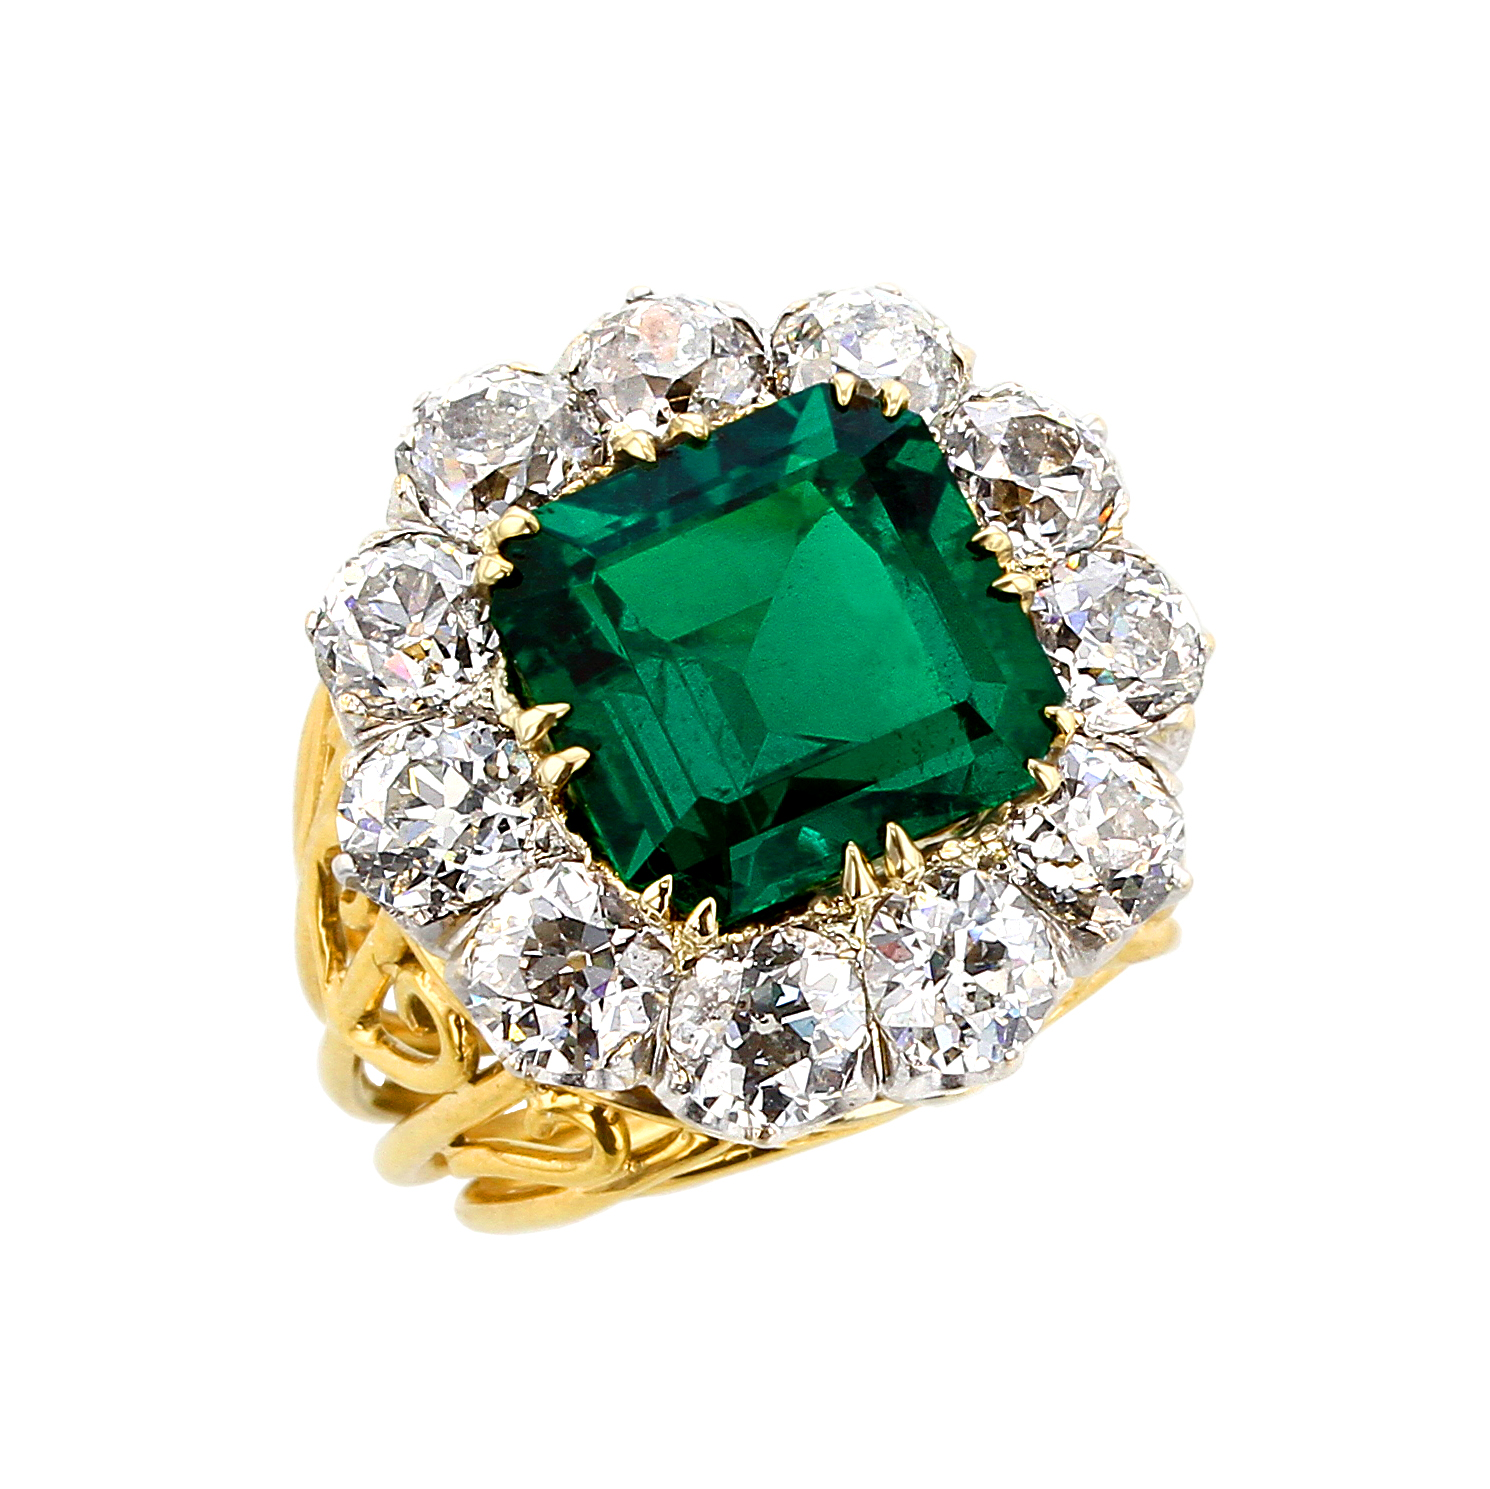 MAGNIFICENT 5 CT. NO OIL MUZO COLOMBIAN EMERALD AND OLD MIND DIAMOND GOLD RING